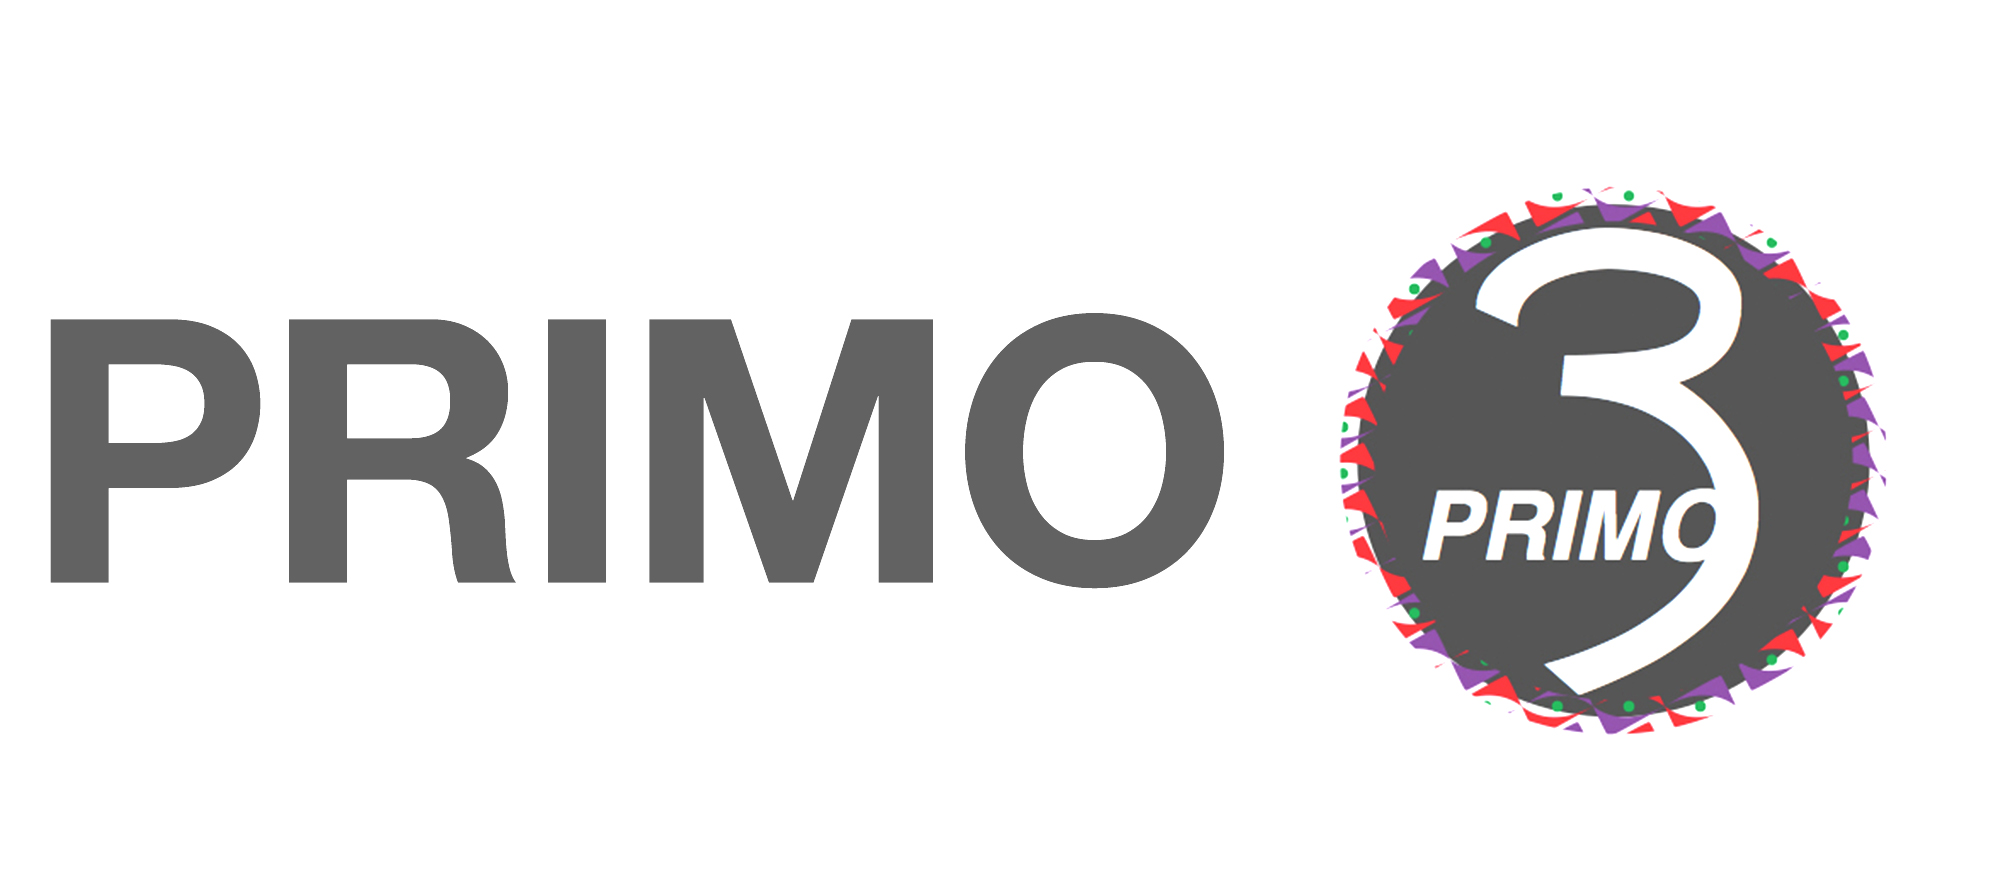 Custom 9 inch Wheel - Primo 3 Spoke composite Hub with 9 Inch Tyre